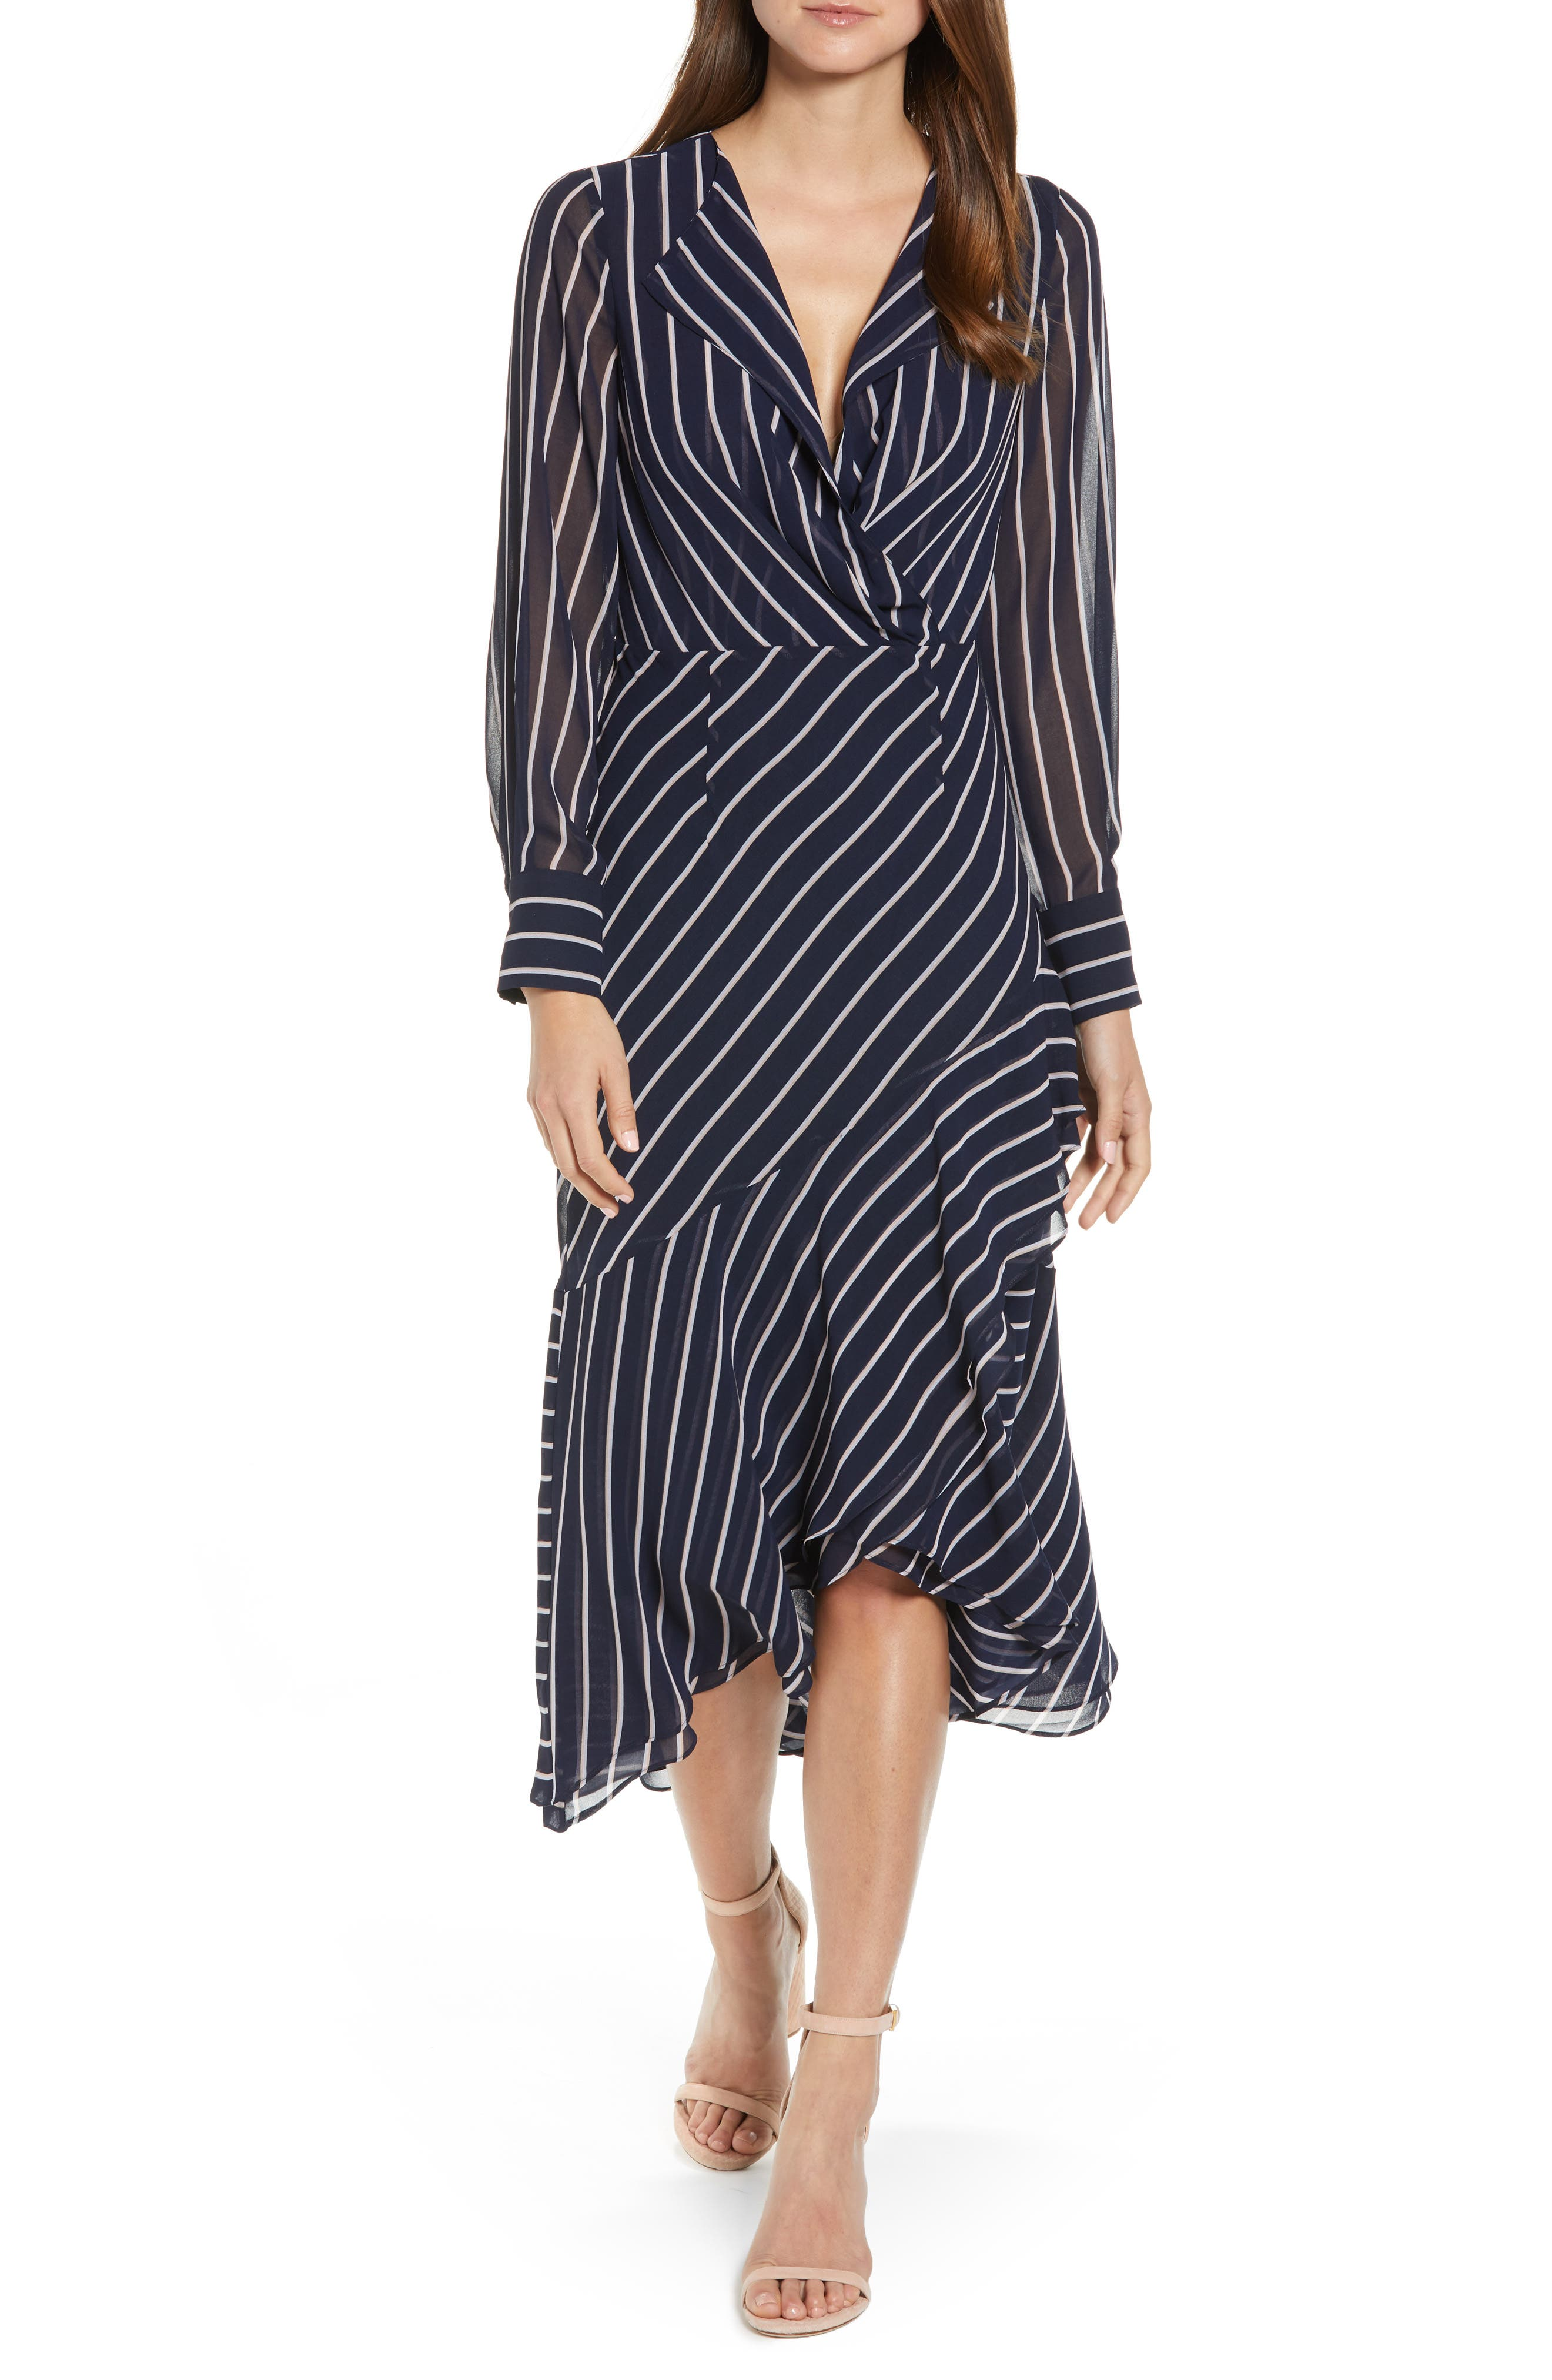 1930s Day Dresses, Afternoon Dresses History Womens Rachel Roy Collection Stripe Print Maxi Dress $139.00 AT vintagedancer.com